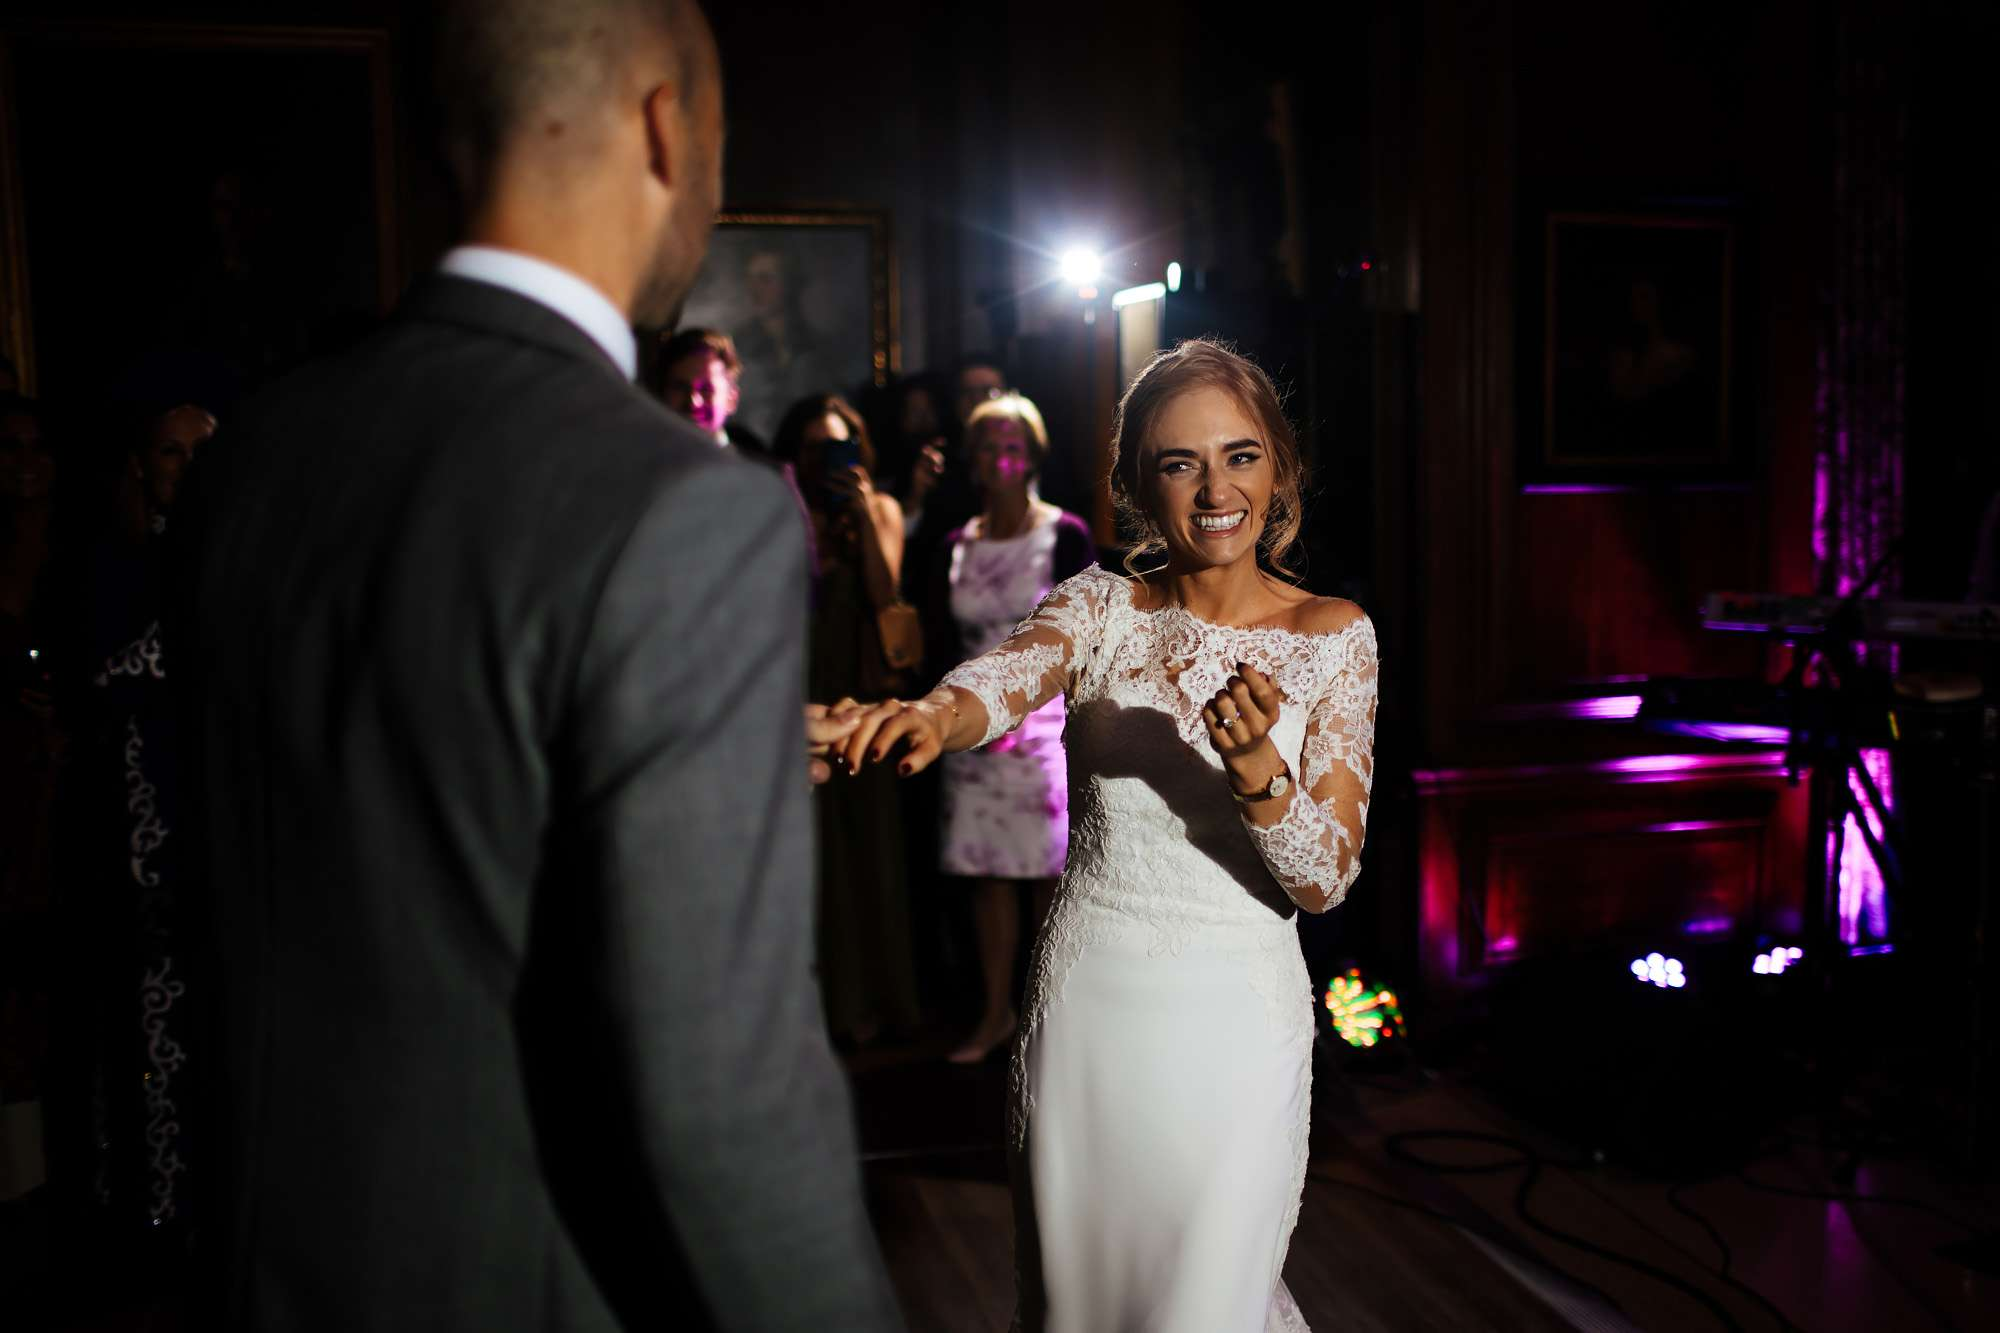 Bride and groom perform their first dance at their wedding